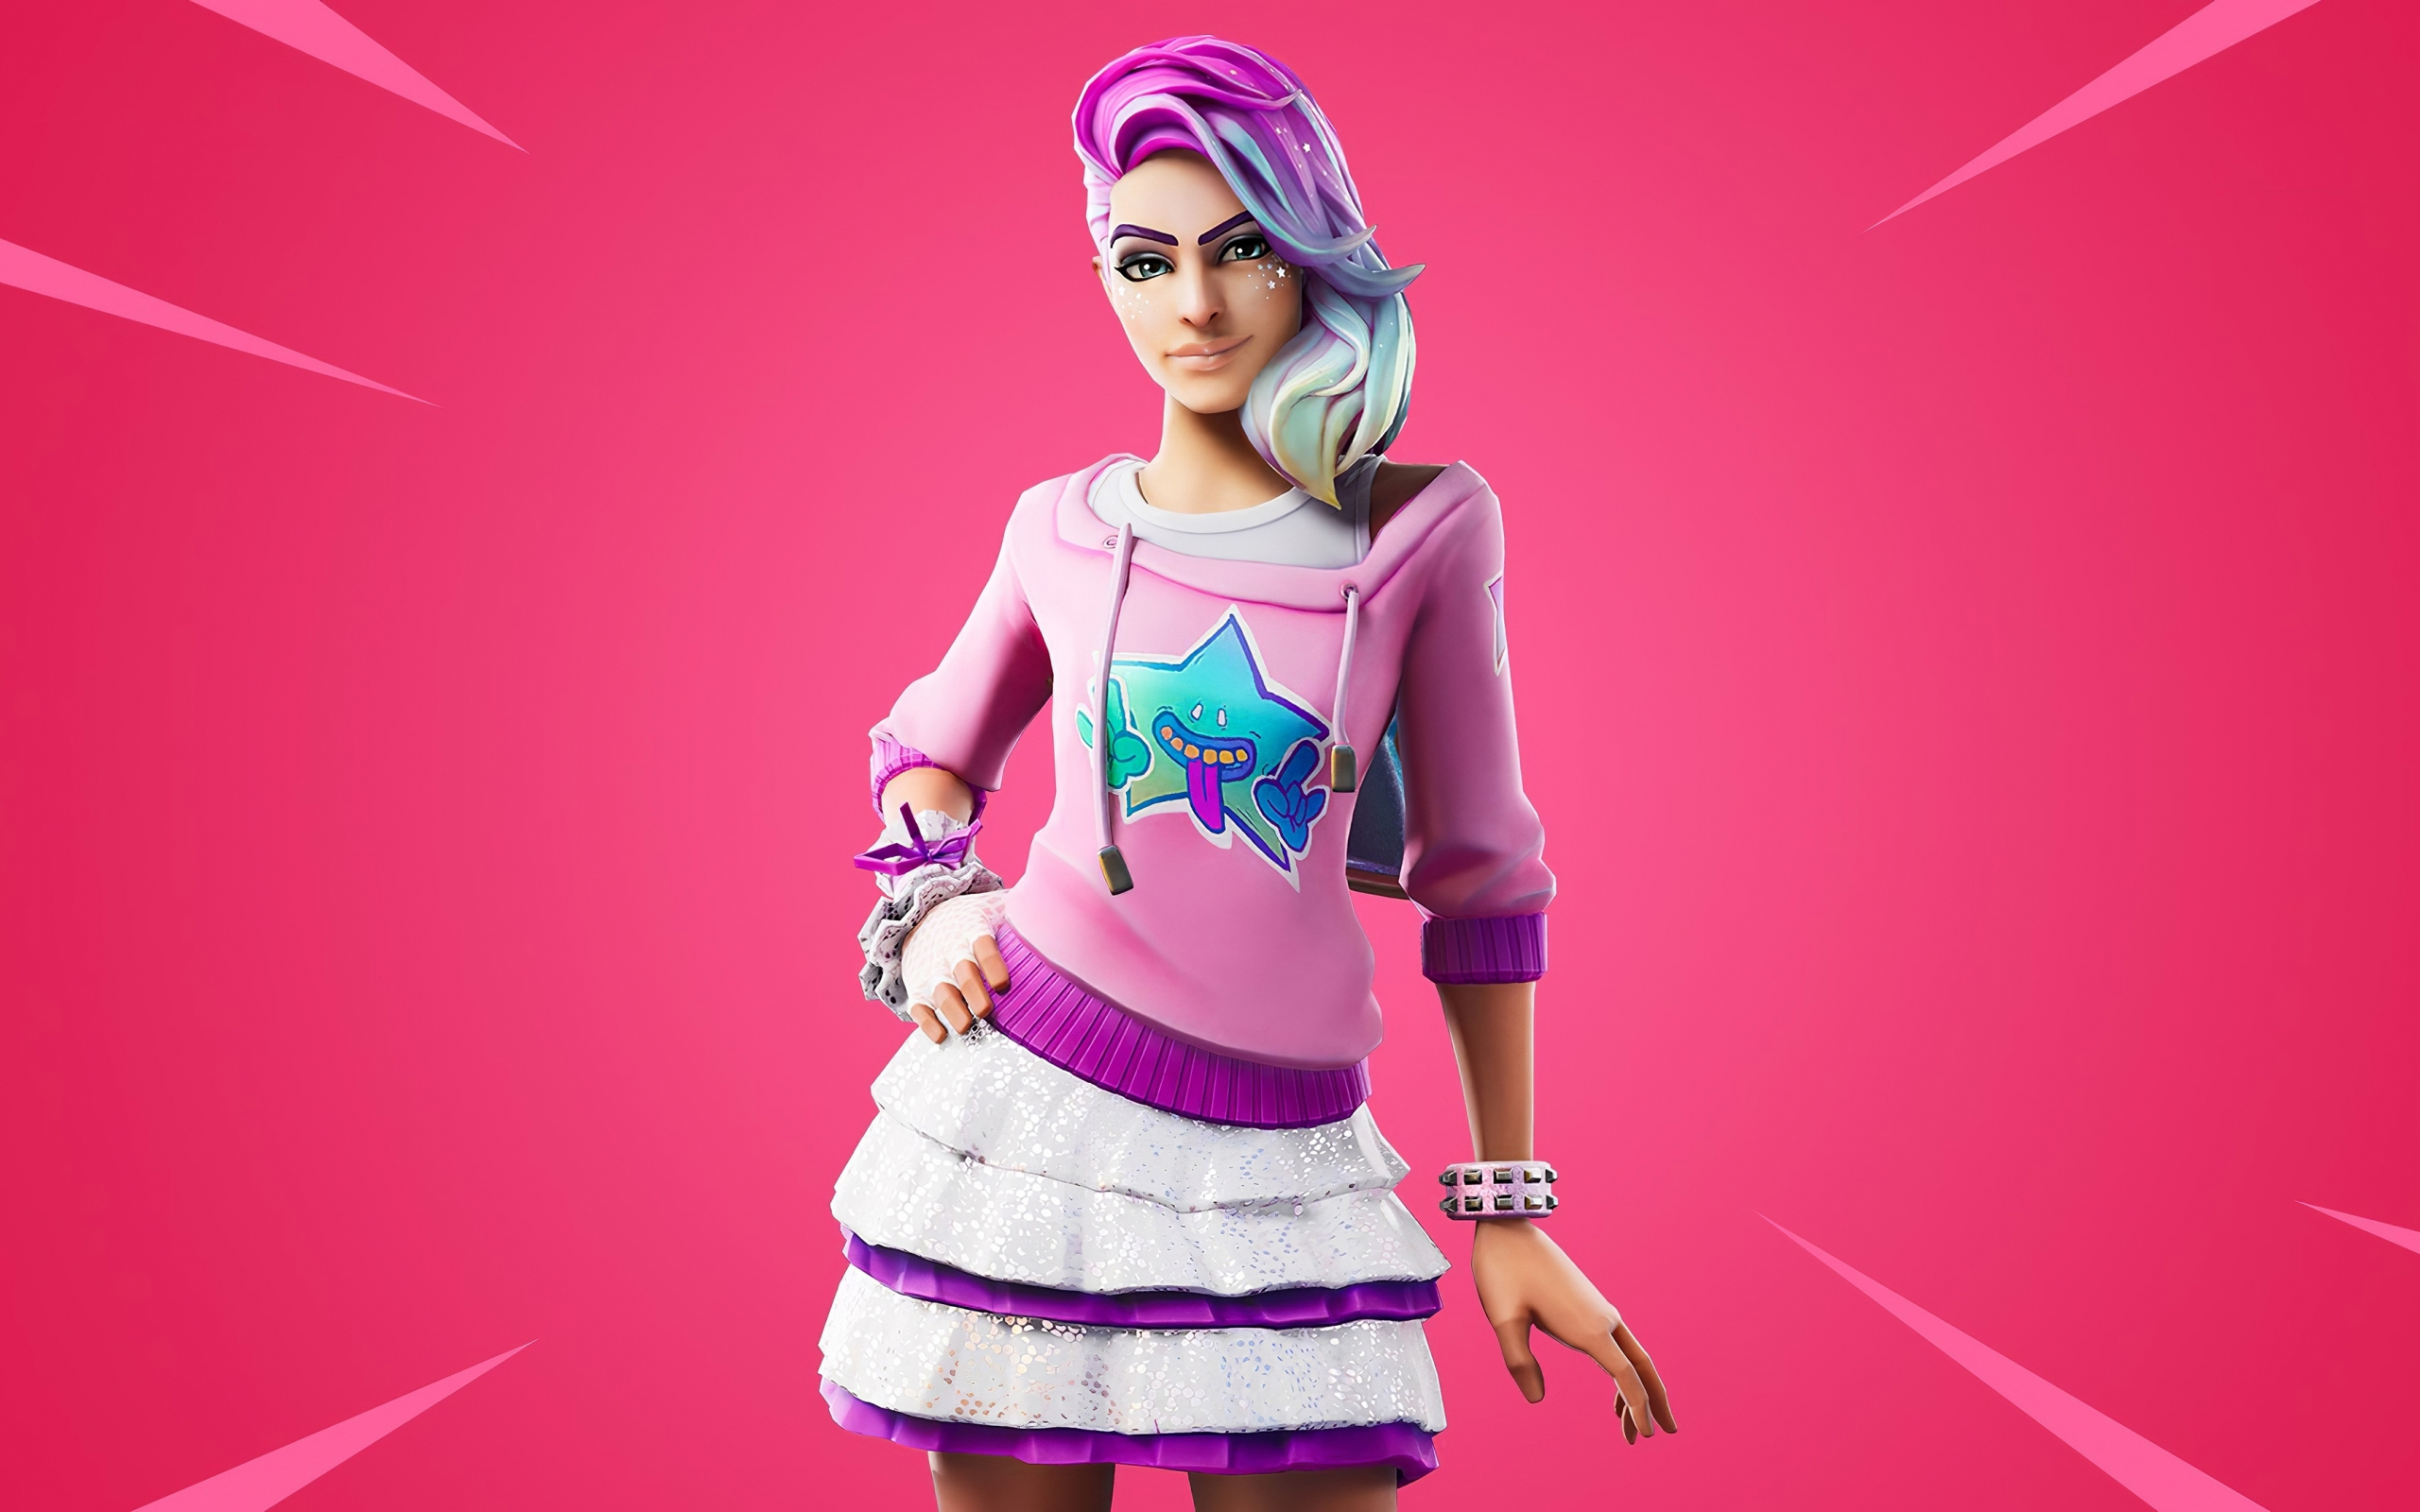 Download 2560x1600 Wallpaper Fortnite Chapter 2 Starlie Outfit Girl Video Game 2019 Dual Wide Widescreen 16 10 Widescreen 2560x1600 Hd Image Background 23099